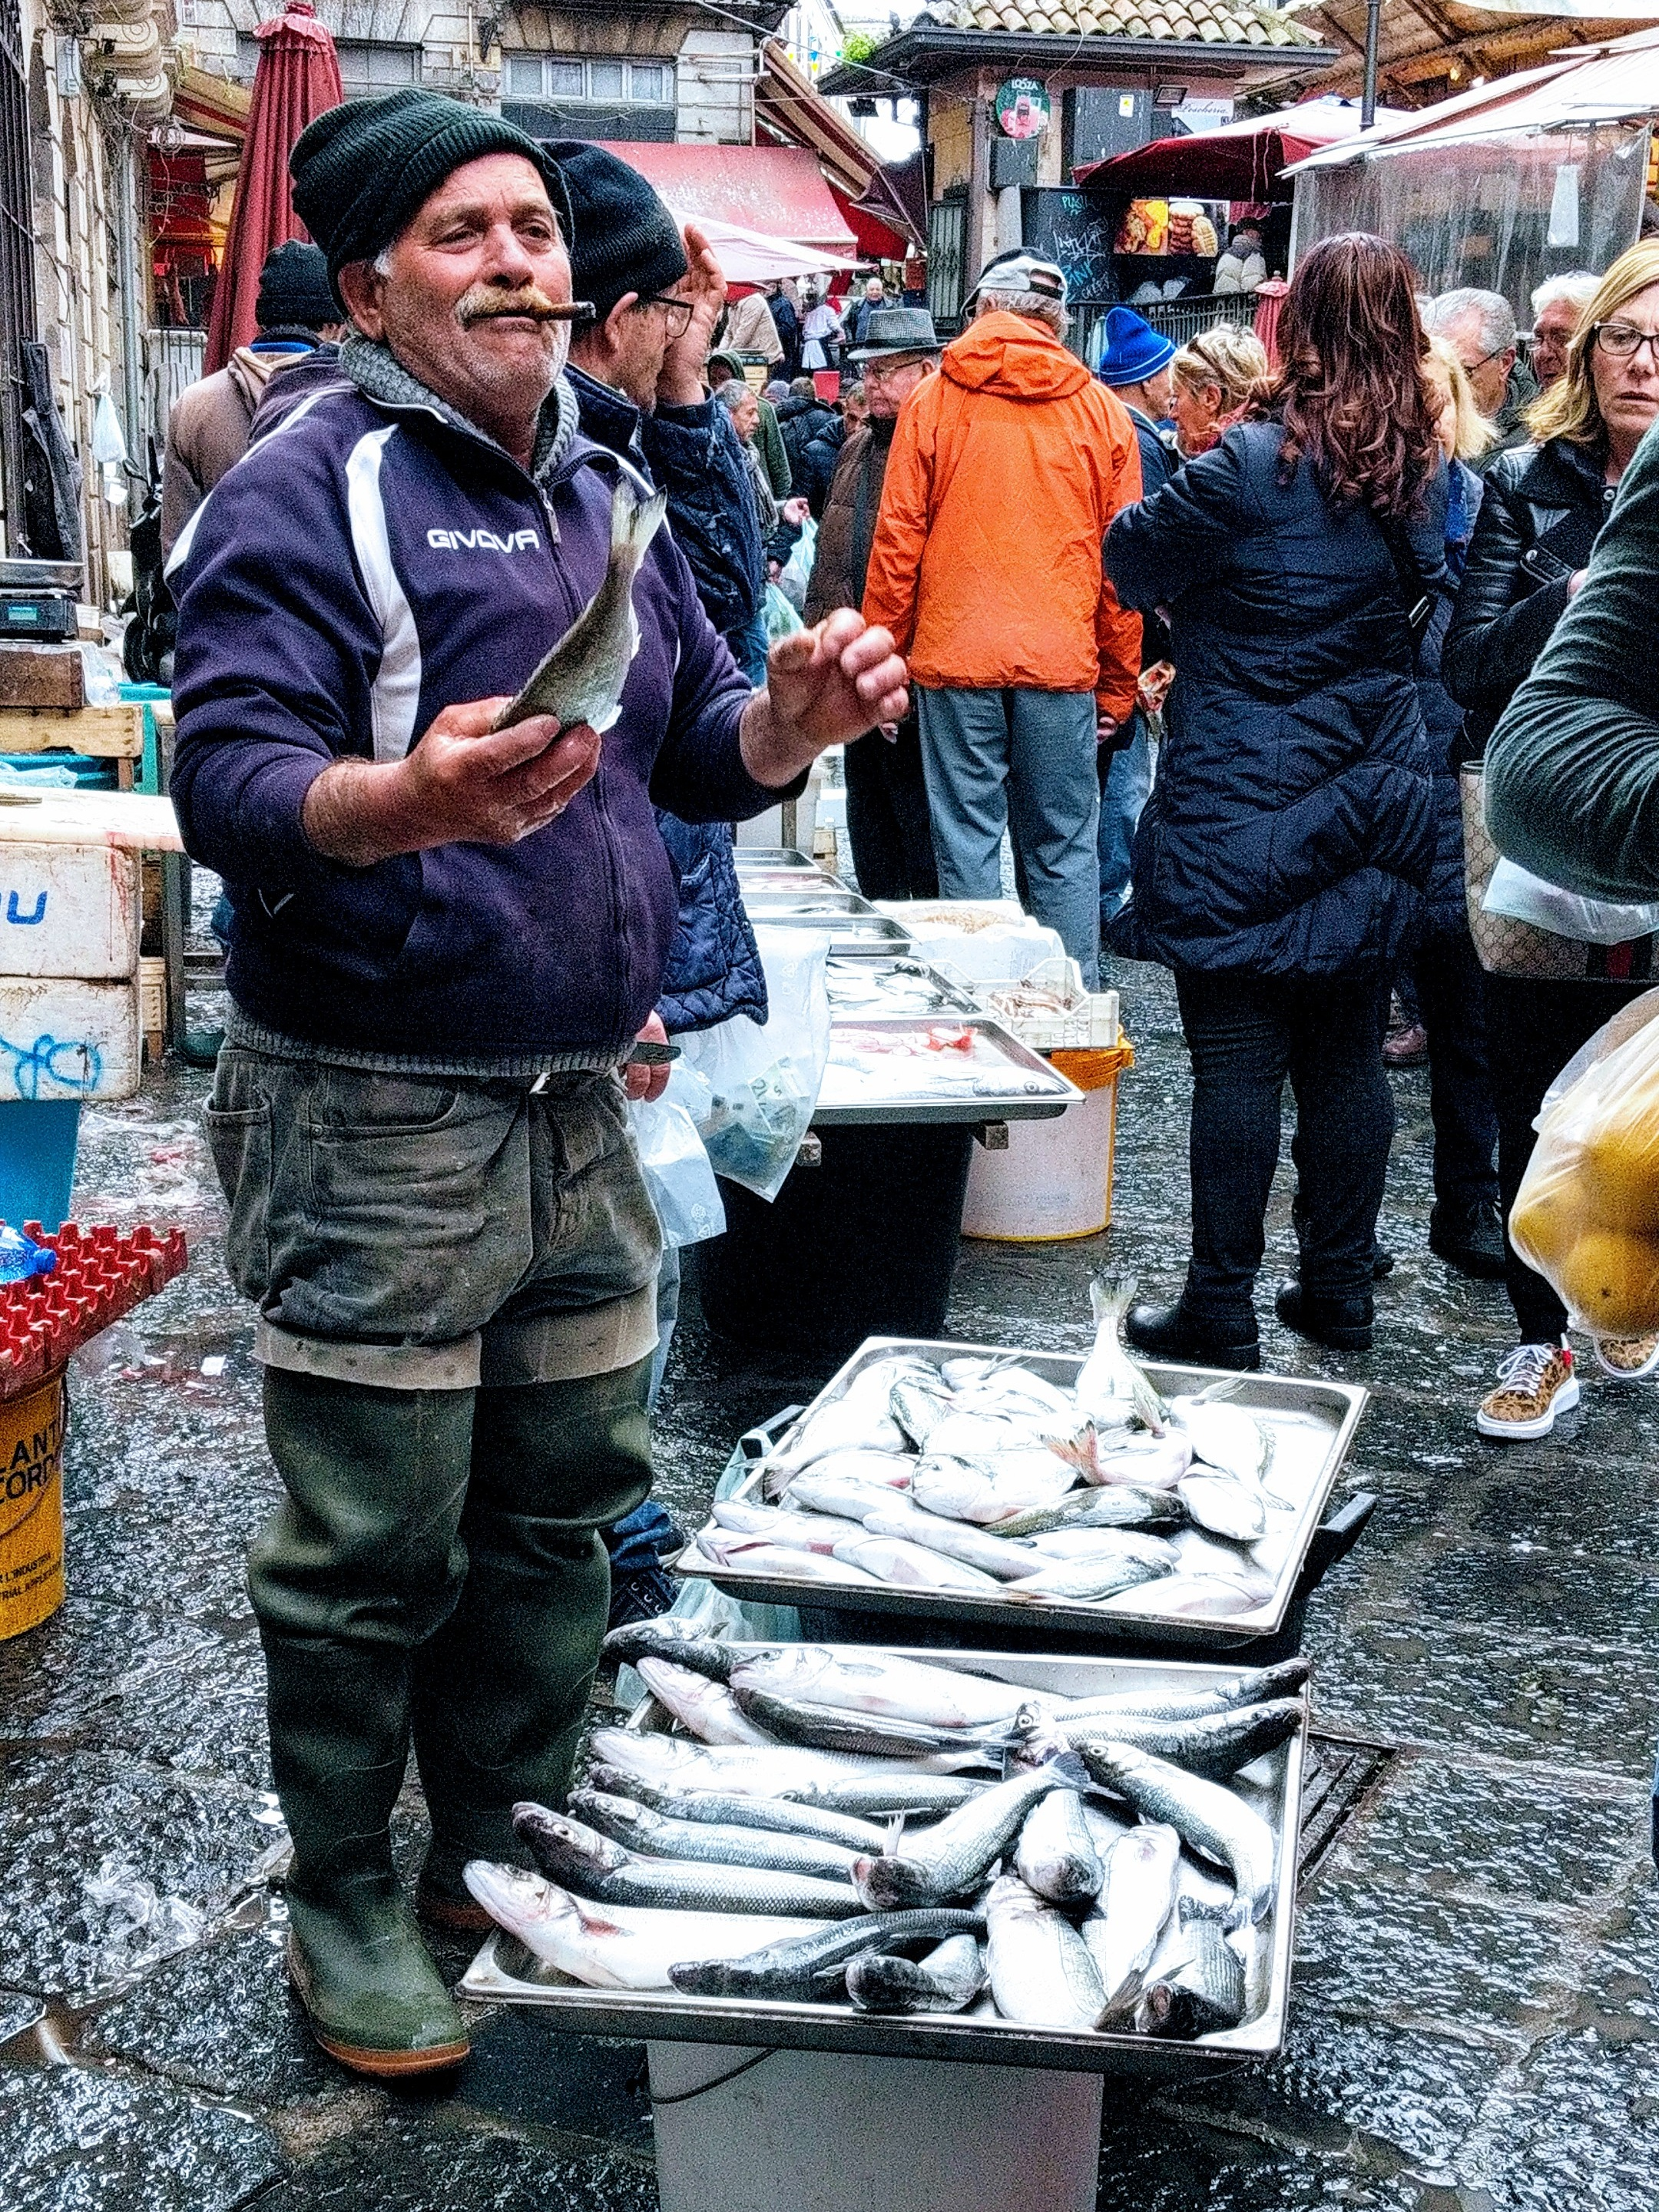 Fishmonger at the fish market in Catania, Sicily